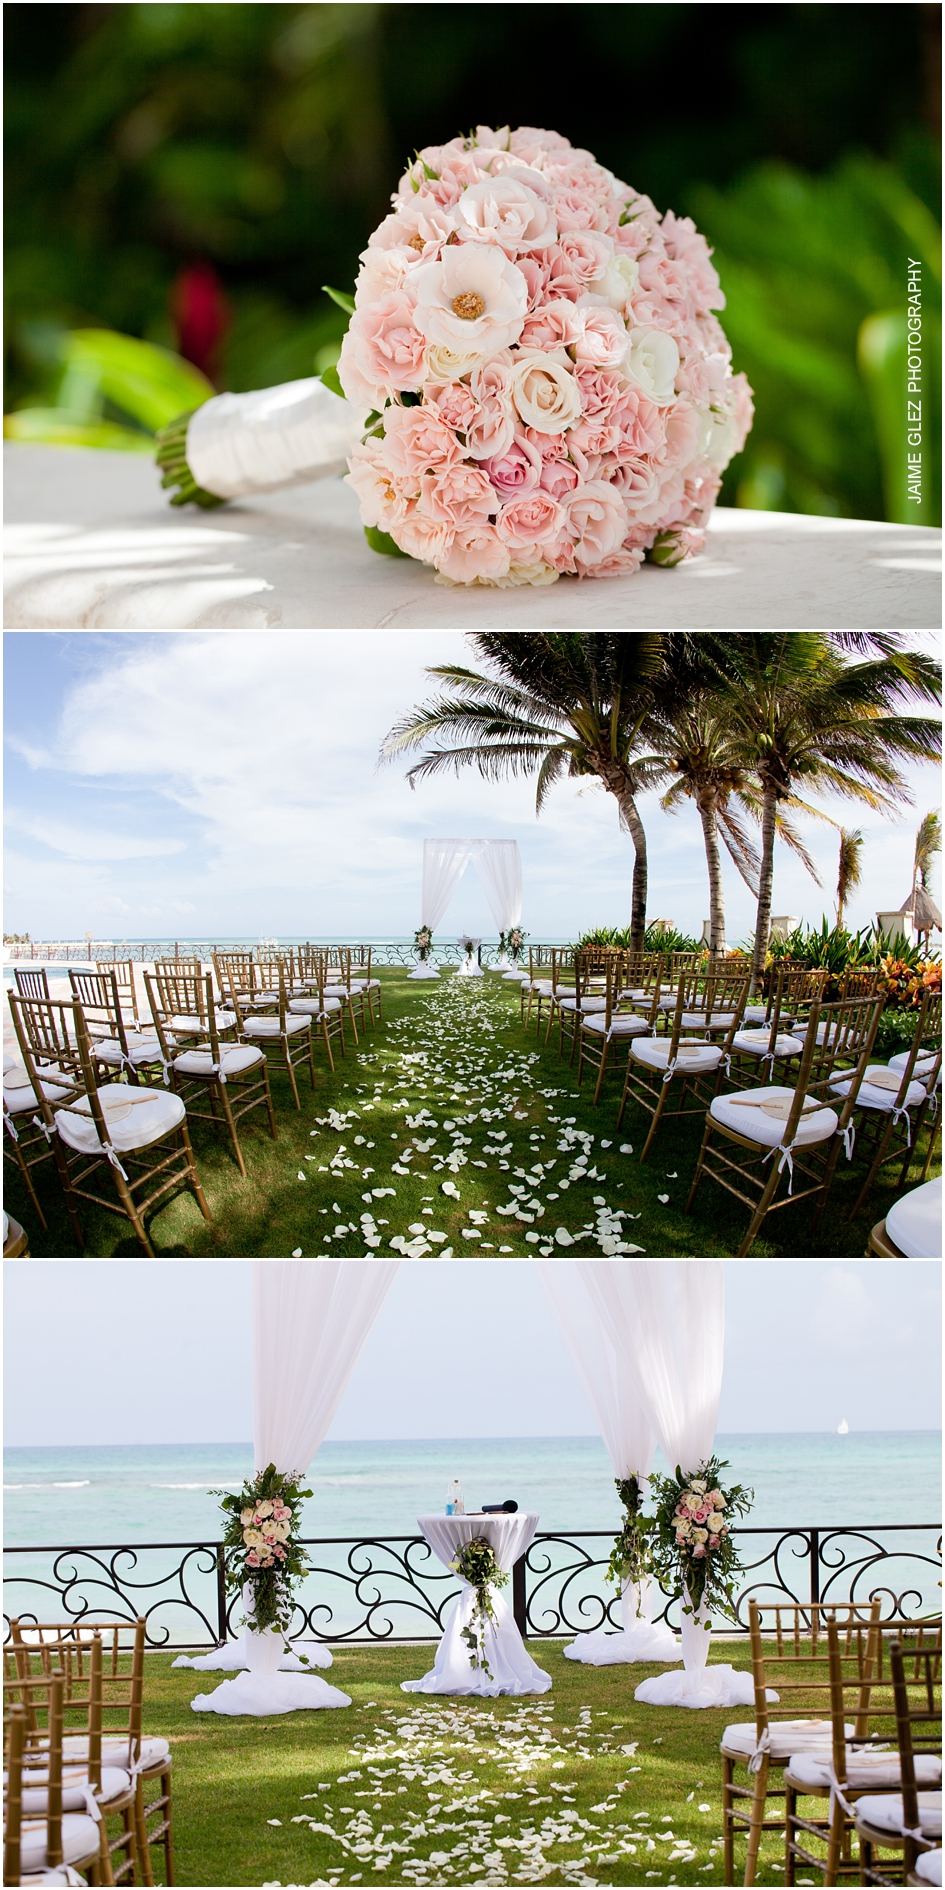 Beautiful outdoor wedding ceremony decor.